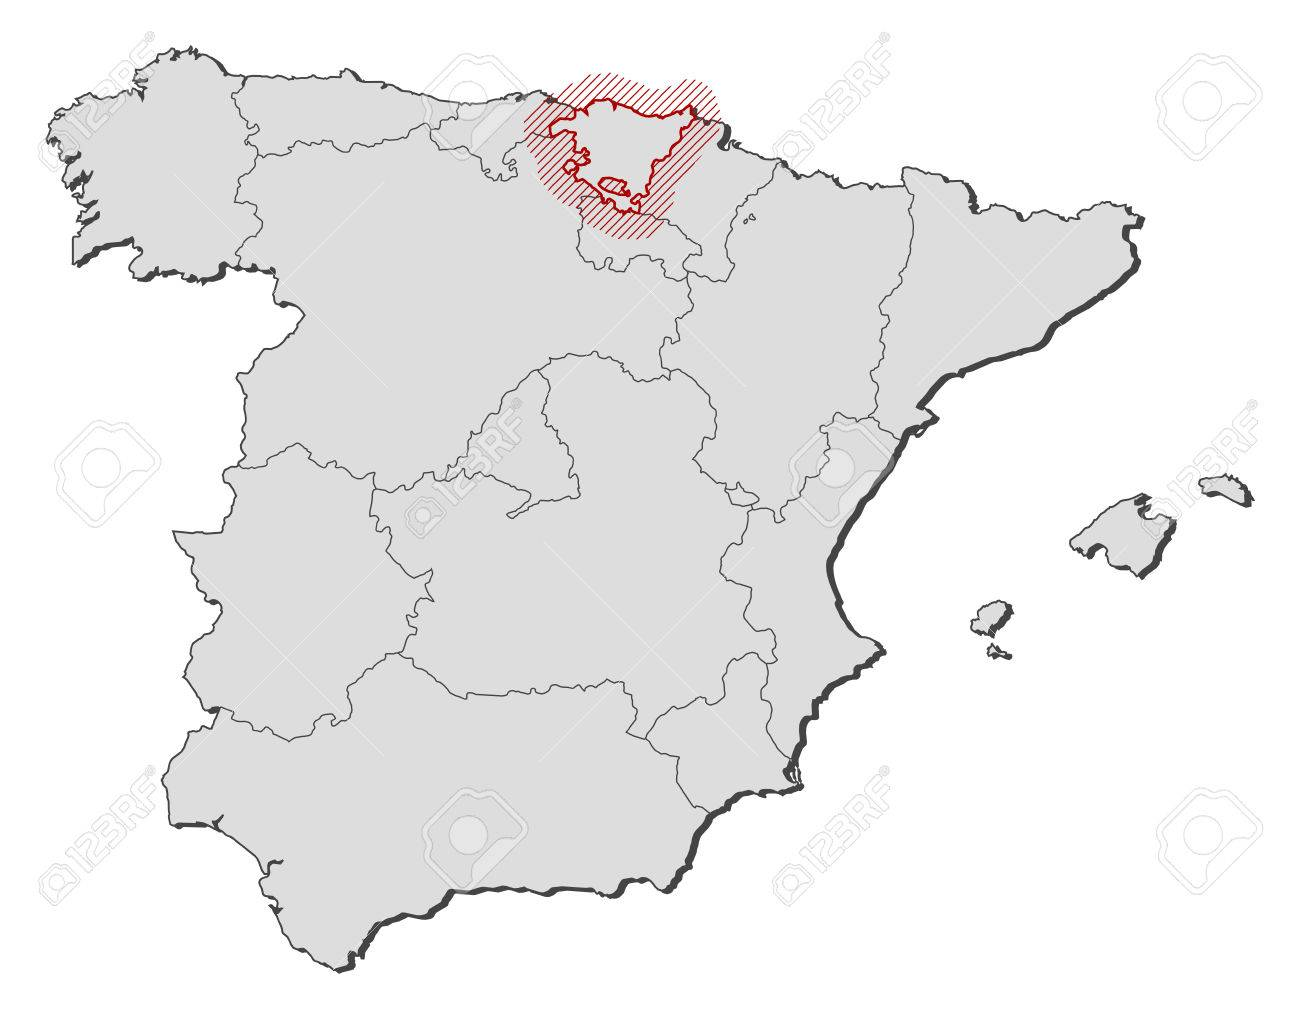 Map Of Spain With The Provinces Basque Country Is Highlighted